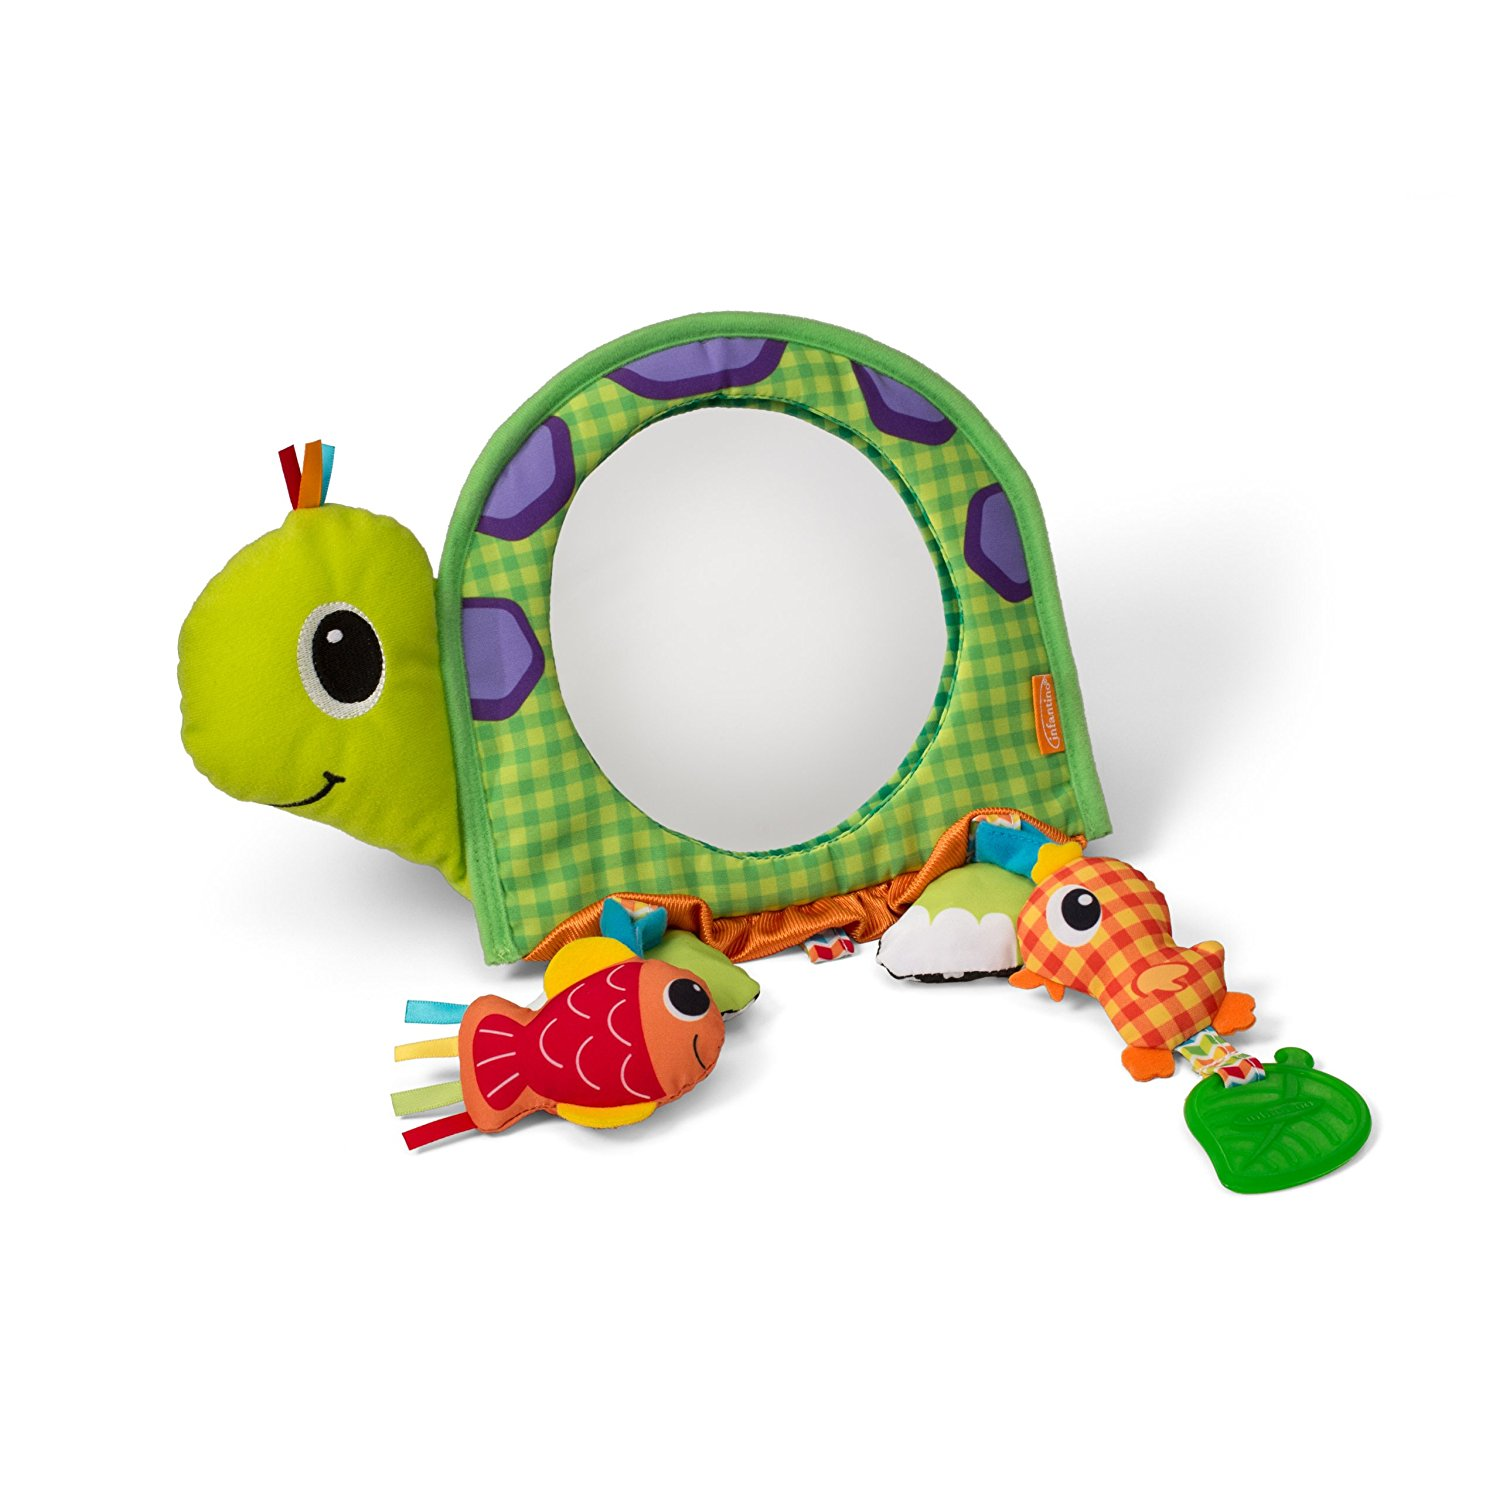 Infantino Discover and Play Activity Mirror by Infantino